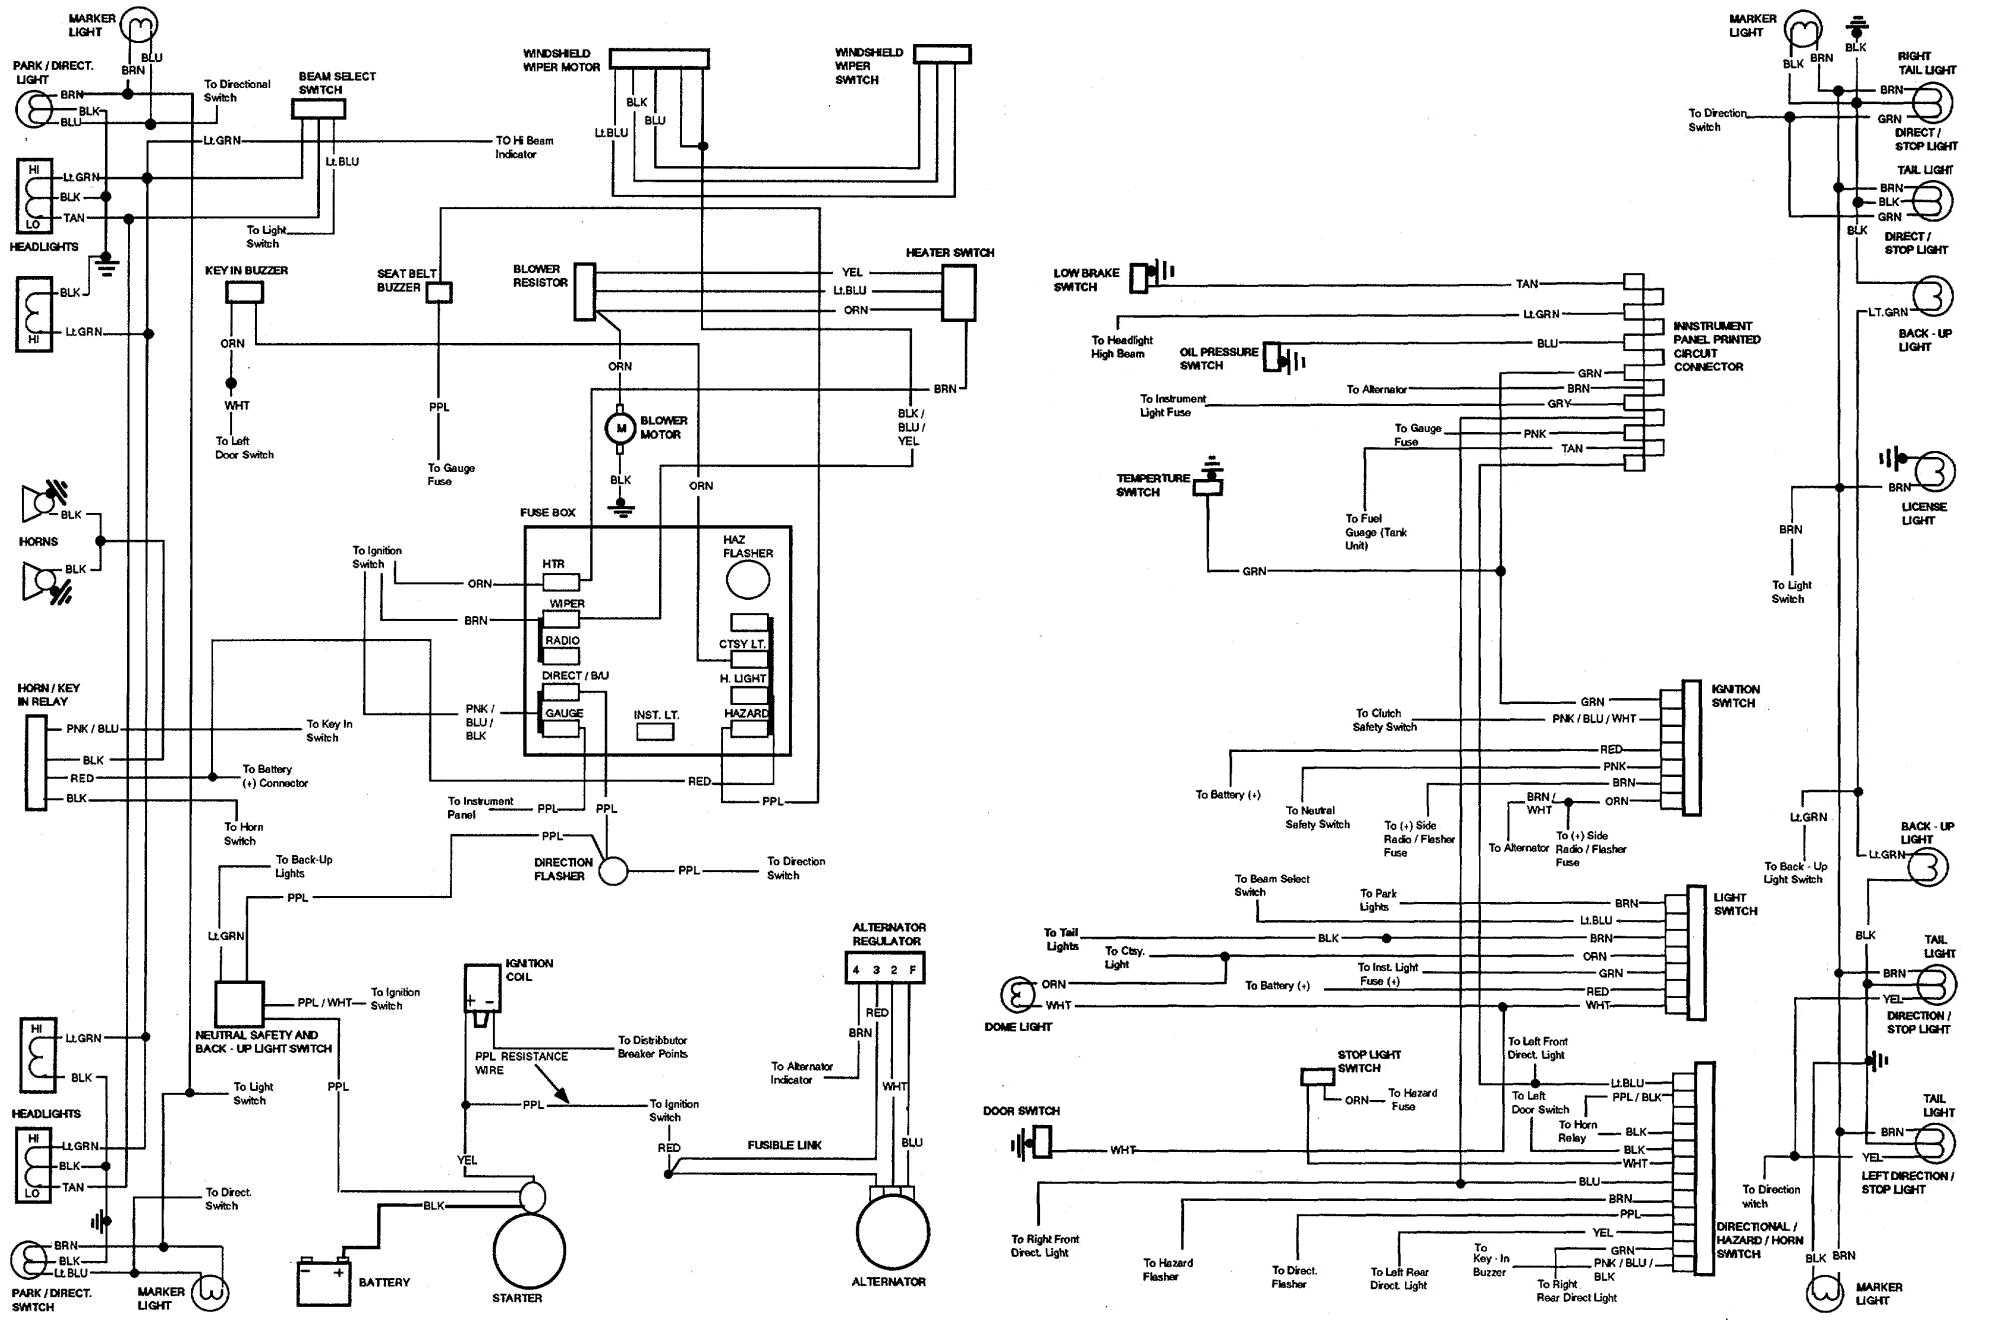 72 Chevy Nova Wiring Diagram Wiring Diagram For Chevelle